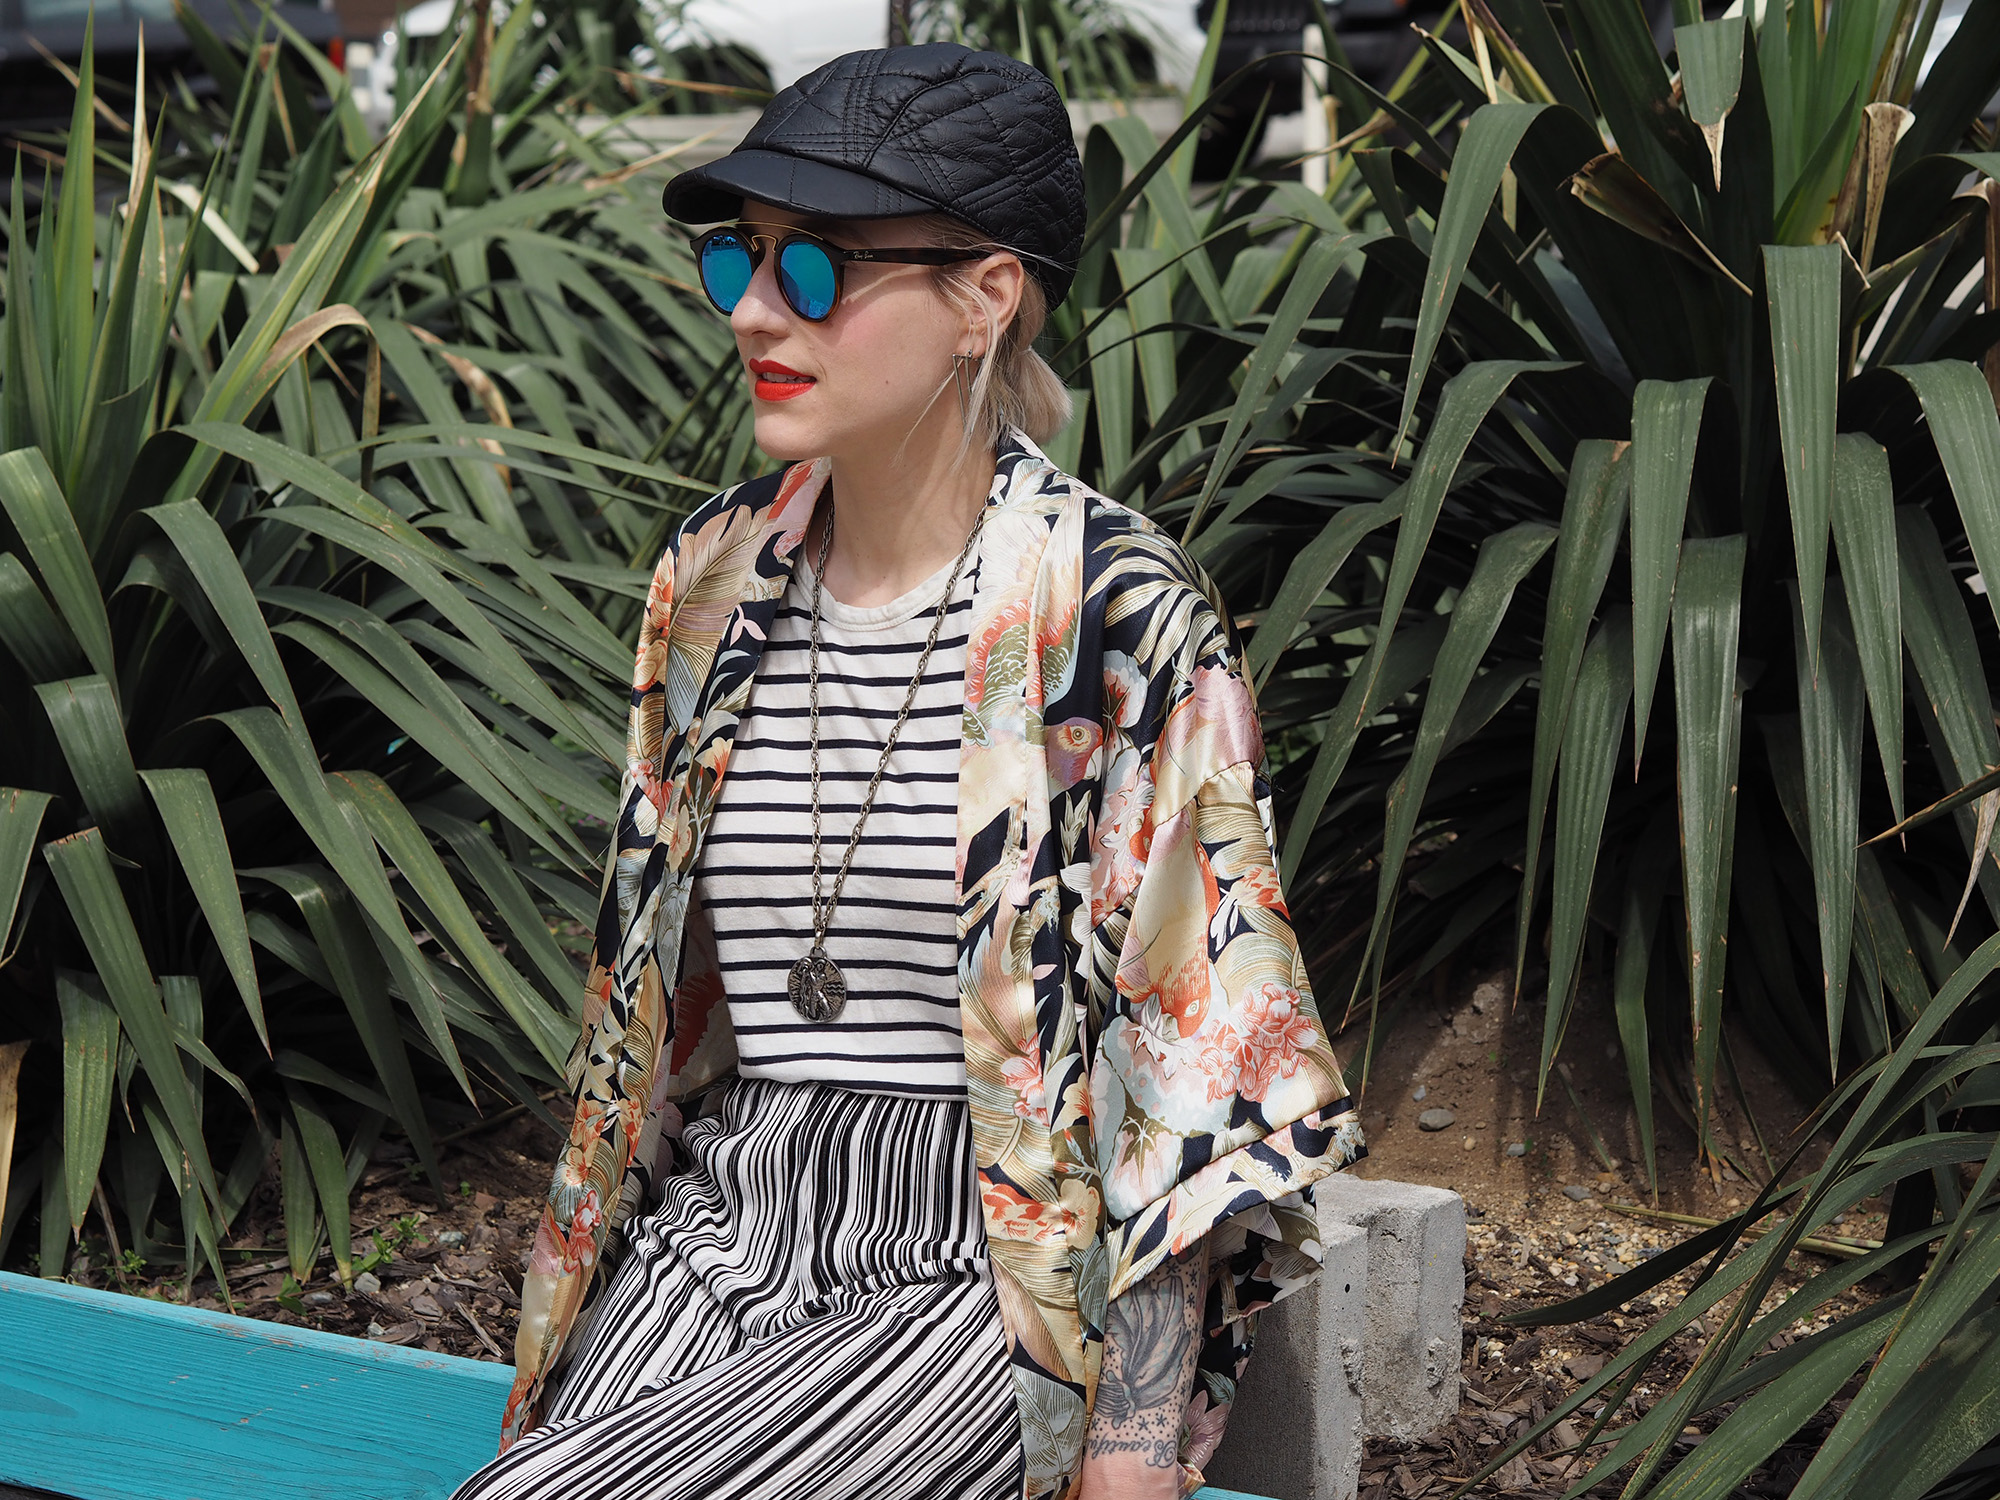 Pattern mixing in stripes and a tropical kimono